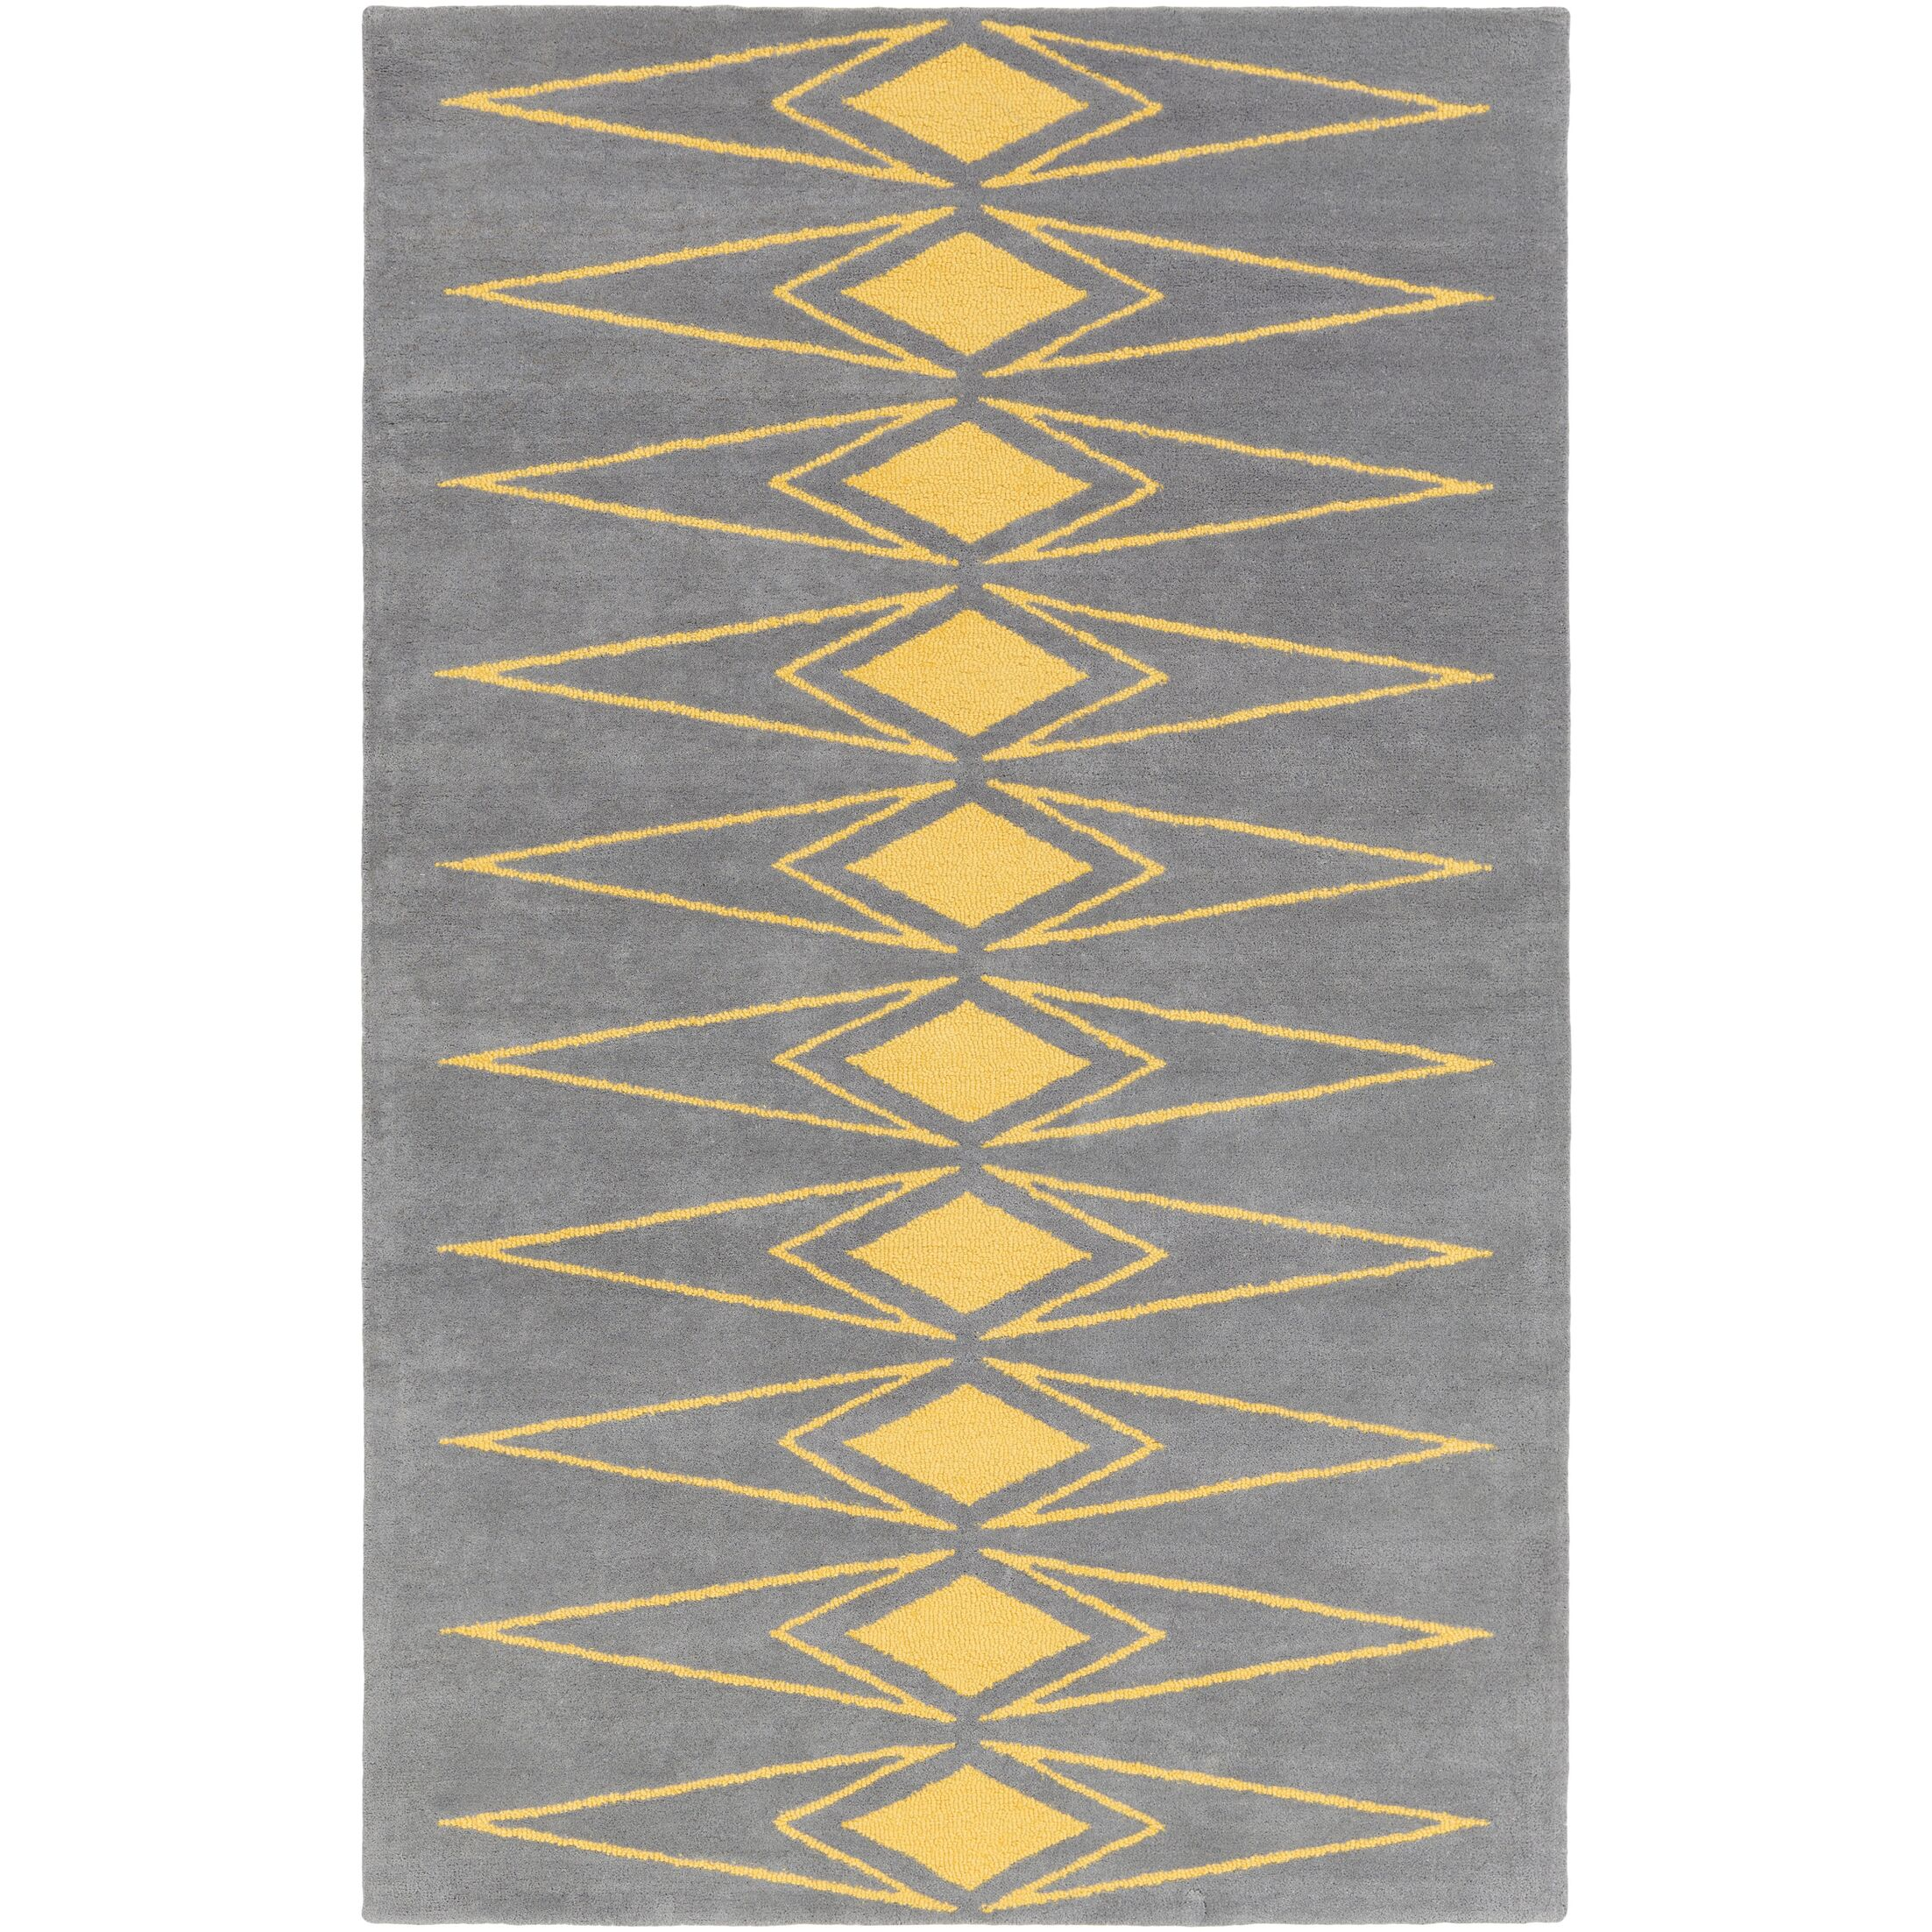 Hand-Tufted Gray/Yellow Area Rug Rug Size: Rectangle 8' x 10'